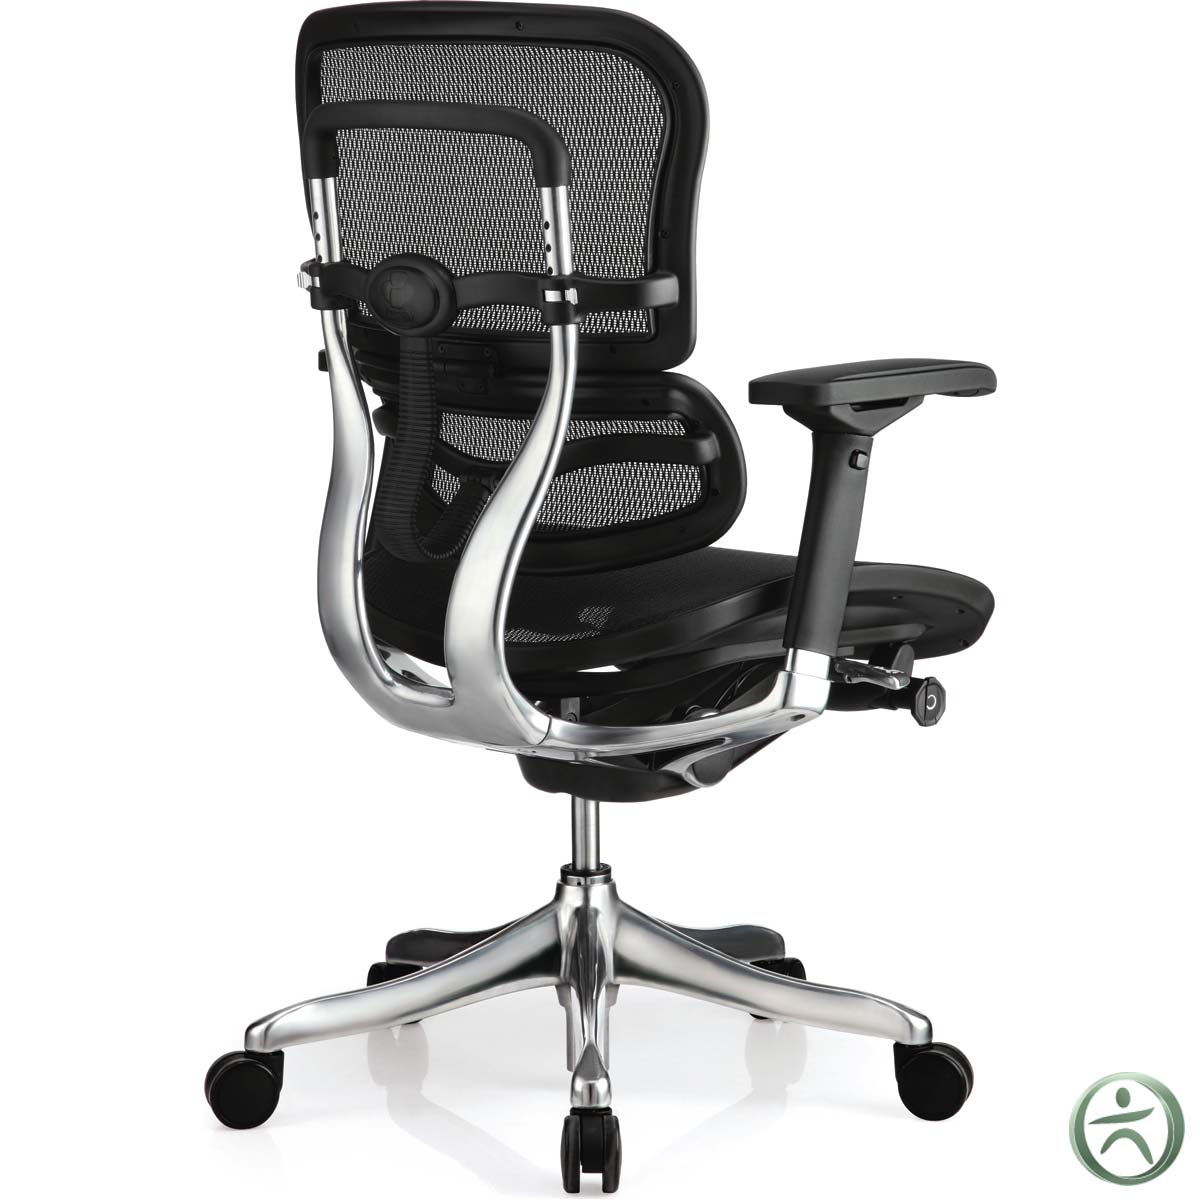 Ergo Chair Raynor Ergo Elite Chair Me5ergltlow Shop Raynor